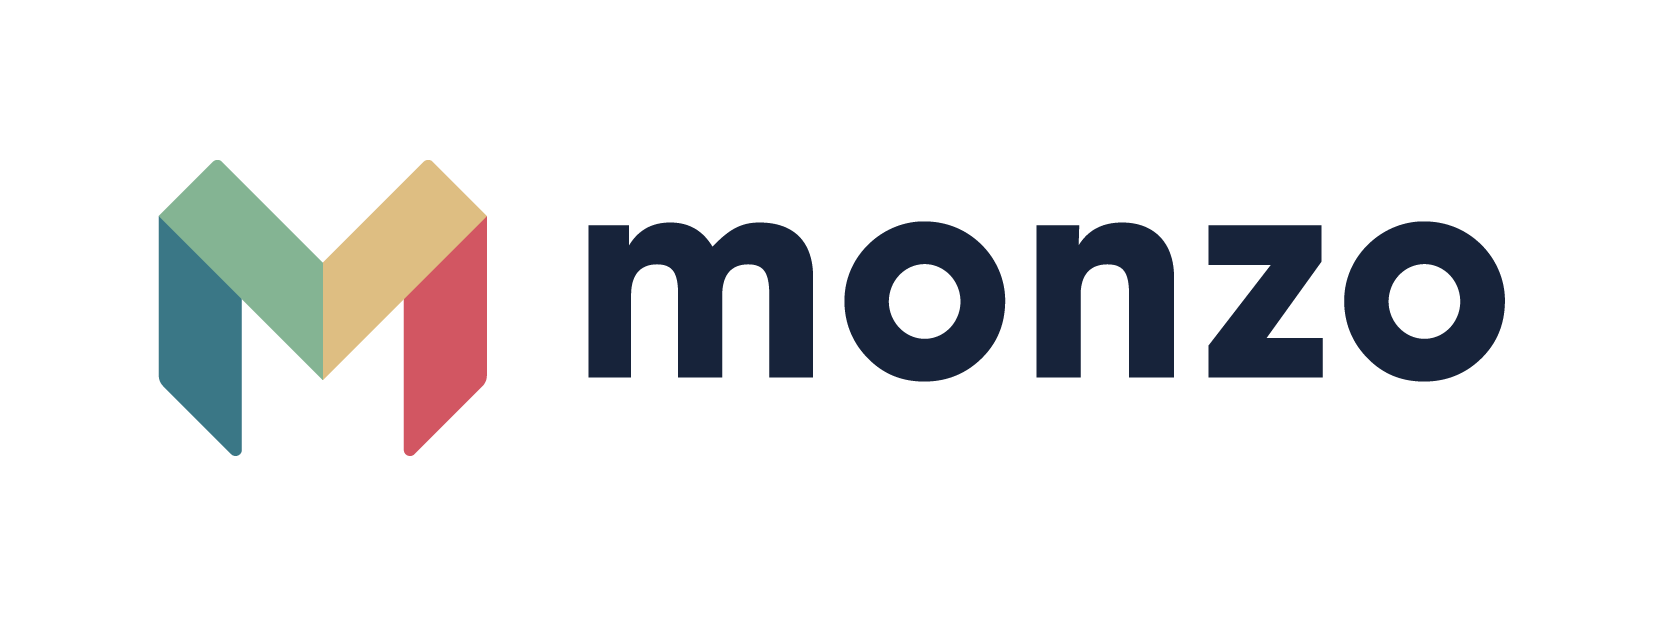 Monzo: Presenting the New Way to Bank - General Catalyst